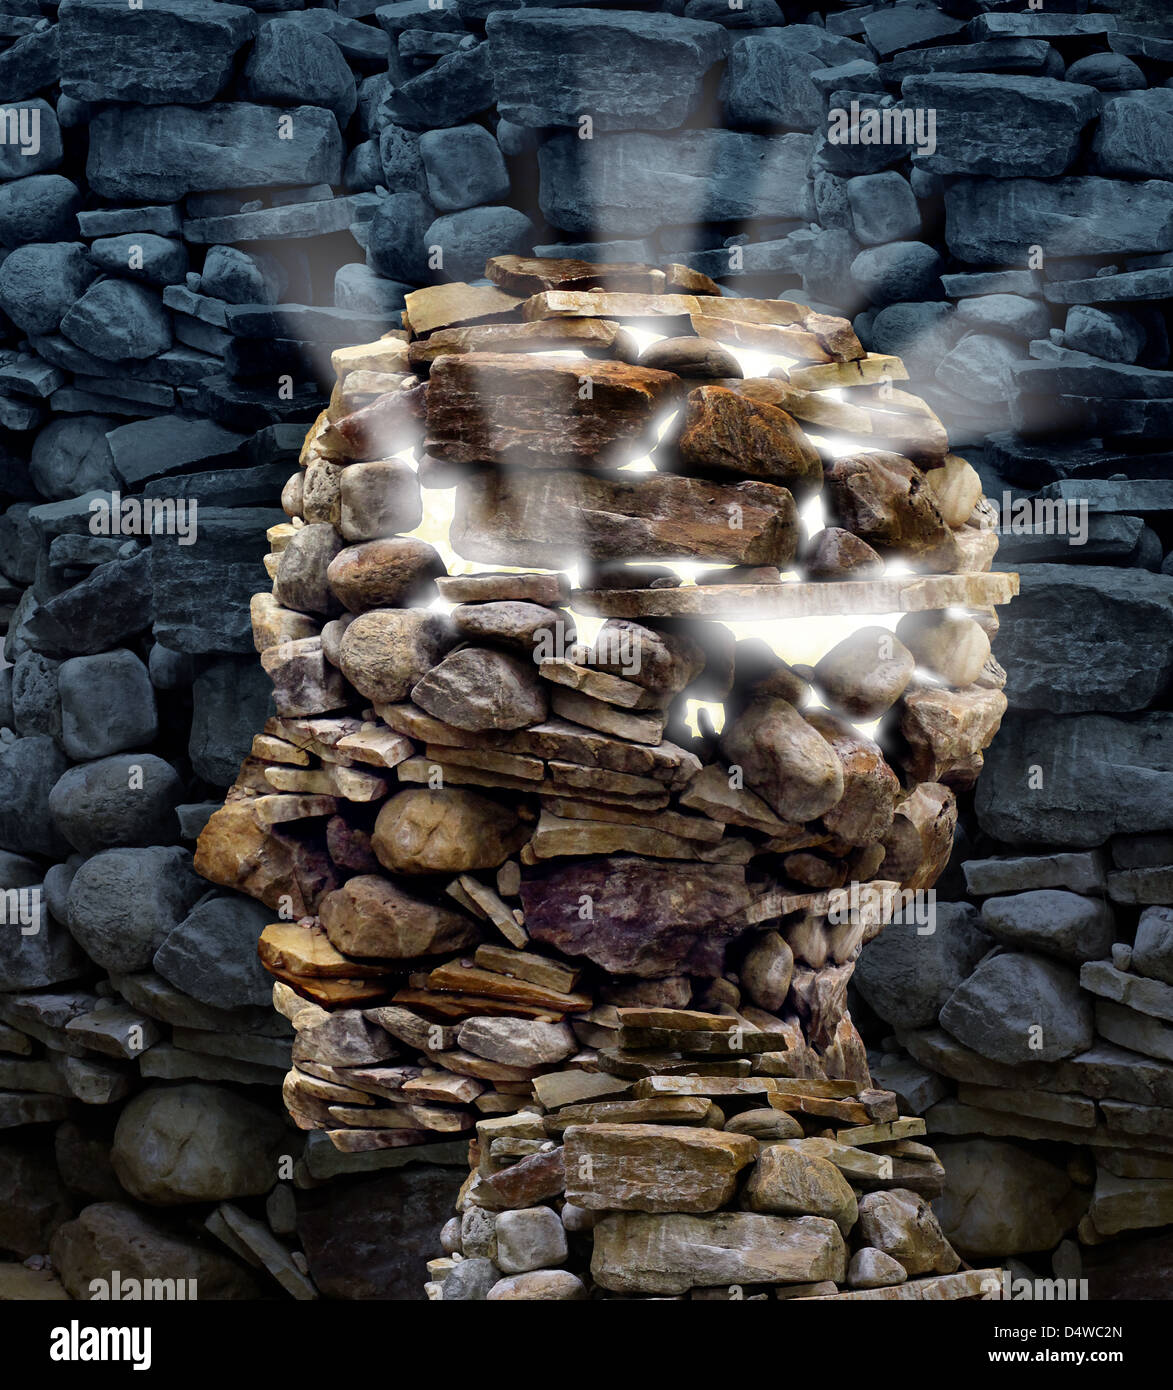 Power of thinking and free your mind as a business or health care power of thinking and free your mind as a business or health care concept with a group of rocks in the shape of a human head glowing with a bright inner biocorpaavc